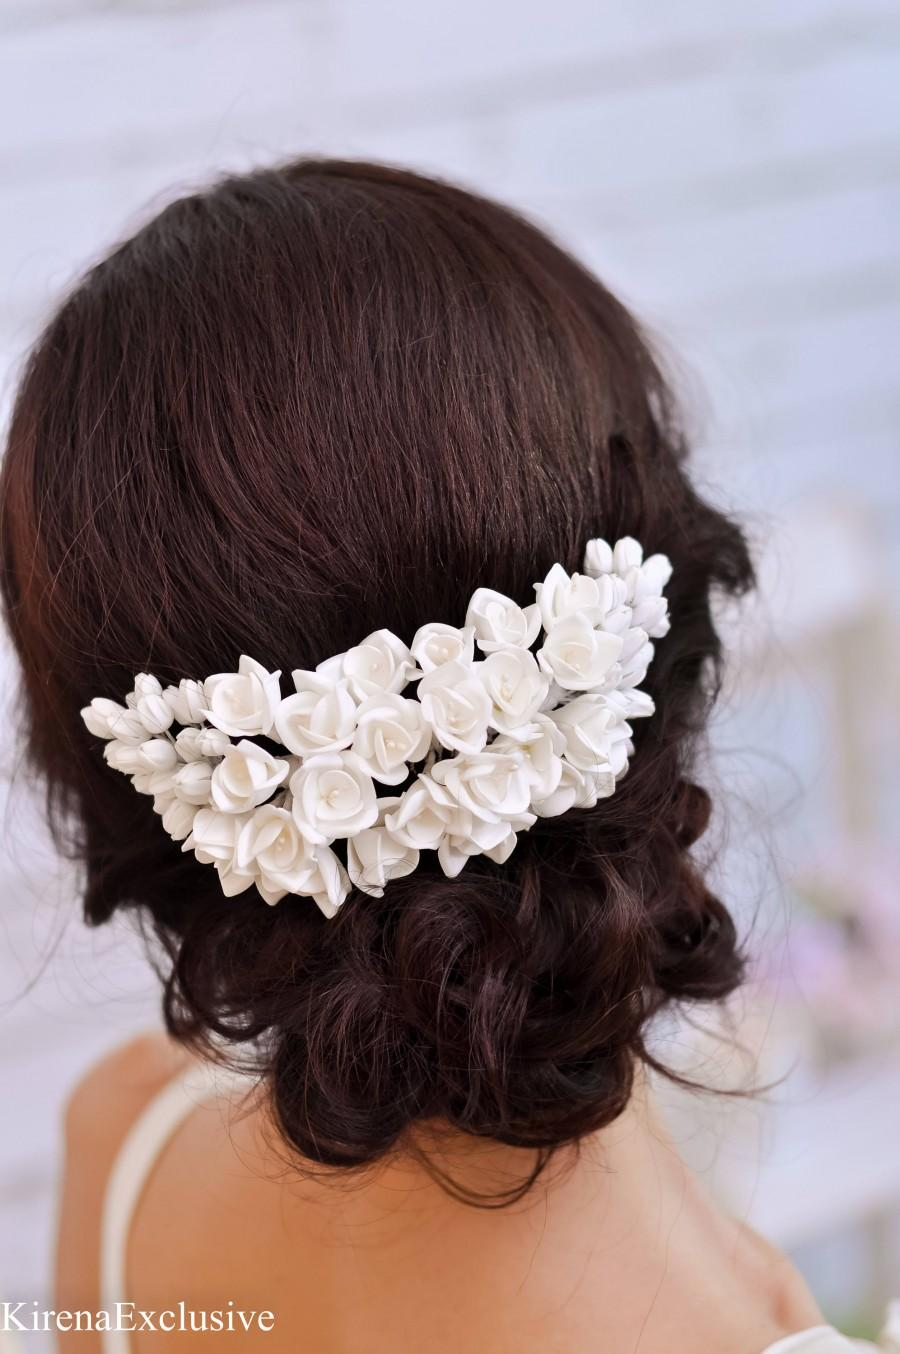 White flower hair comb wedding hair comb floral hair comb flower white flower hair comb wedding hair comb floral hair comb flower hair clip wedding hairpiece flower headpiece bridal hair piece flower comb mightylinksfo